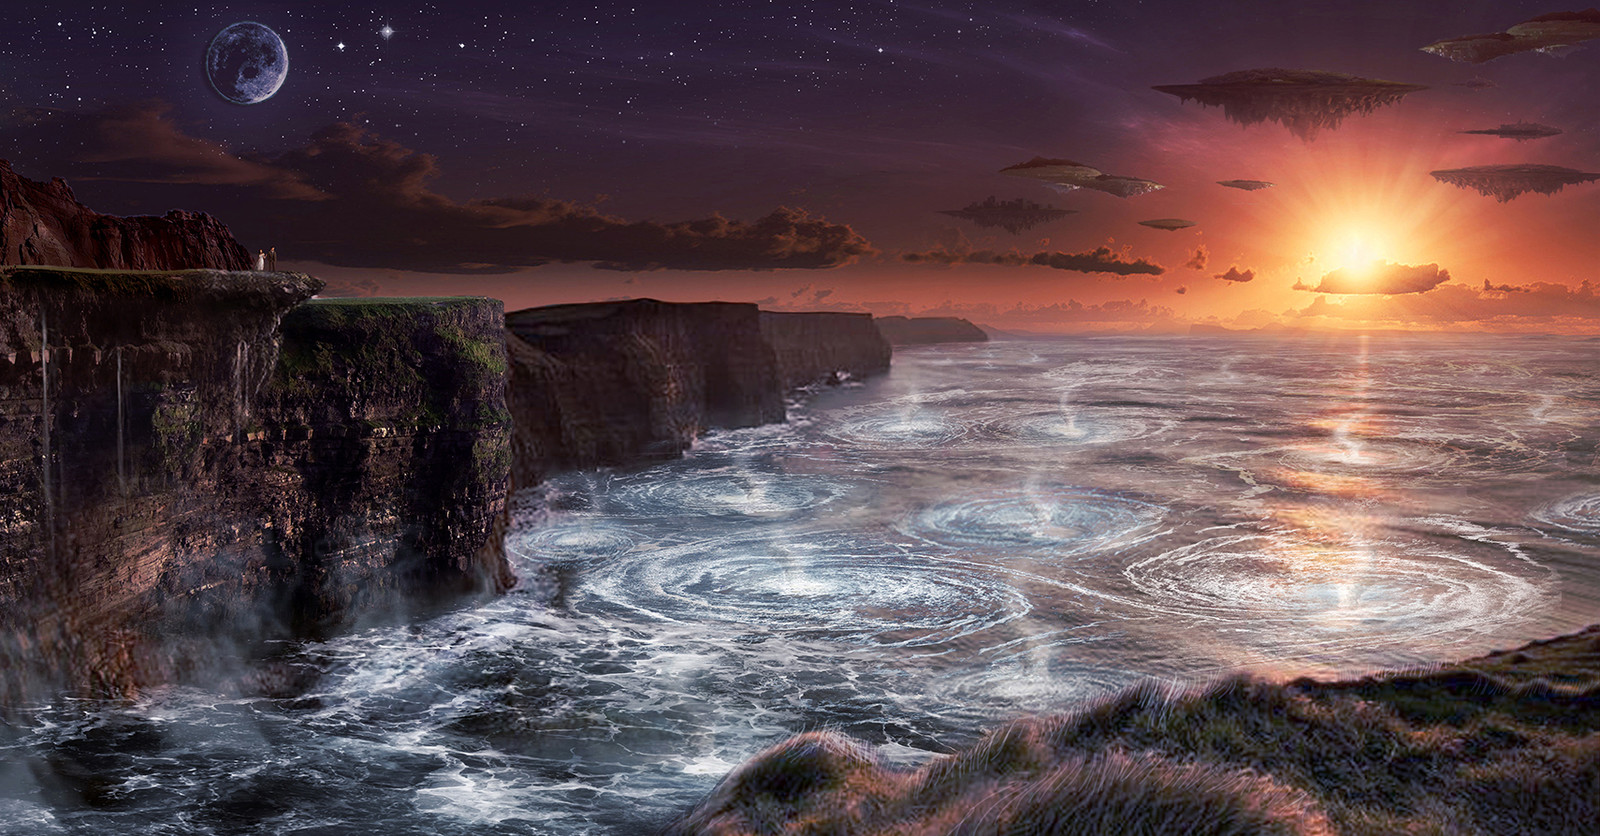 Boiling Cliffs Concept for ABC's Once Upon a Time in Wonderland